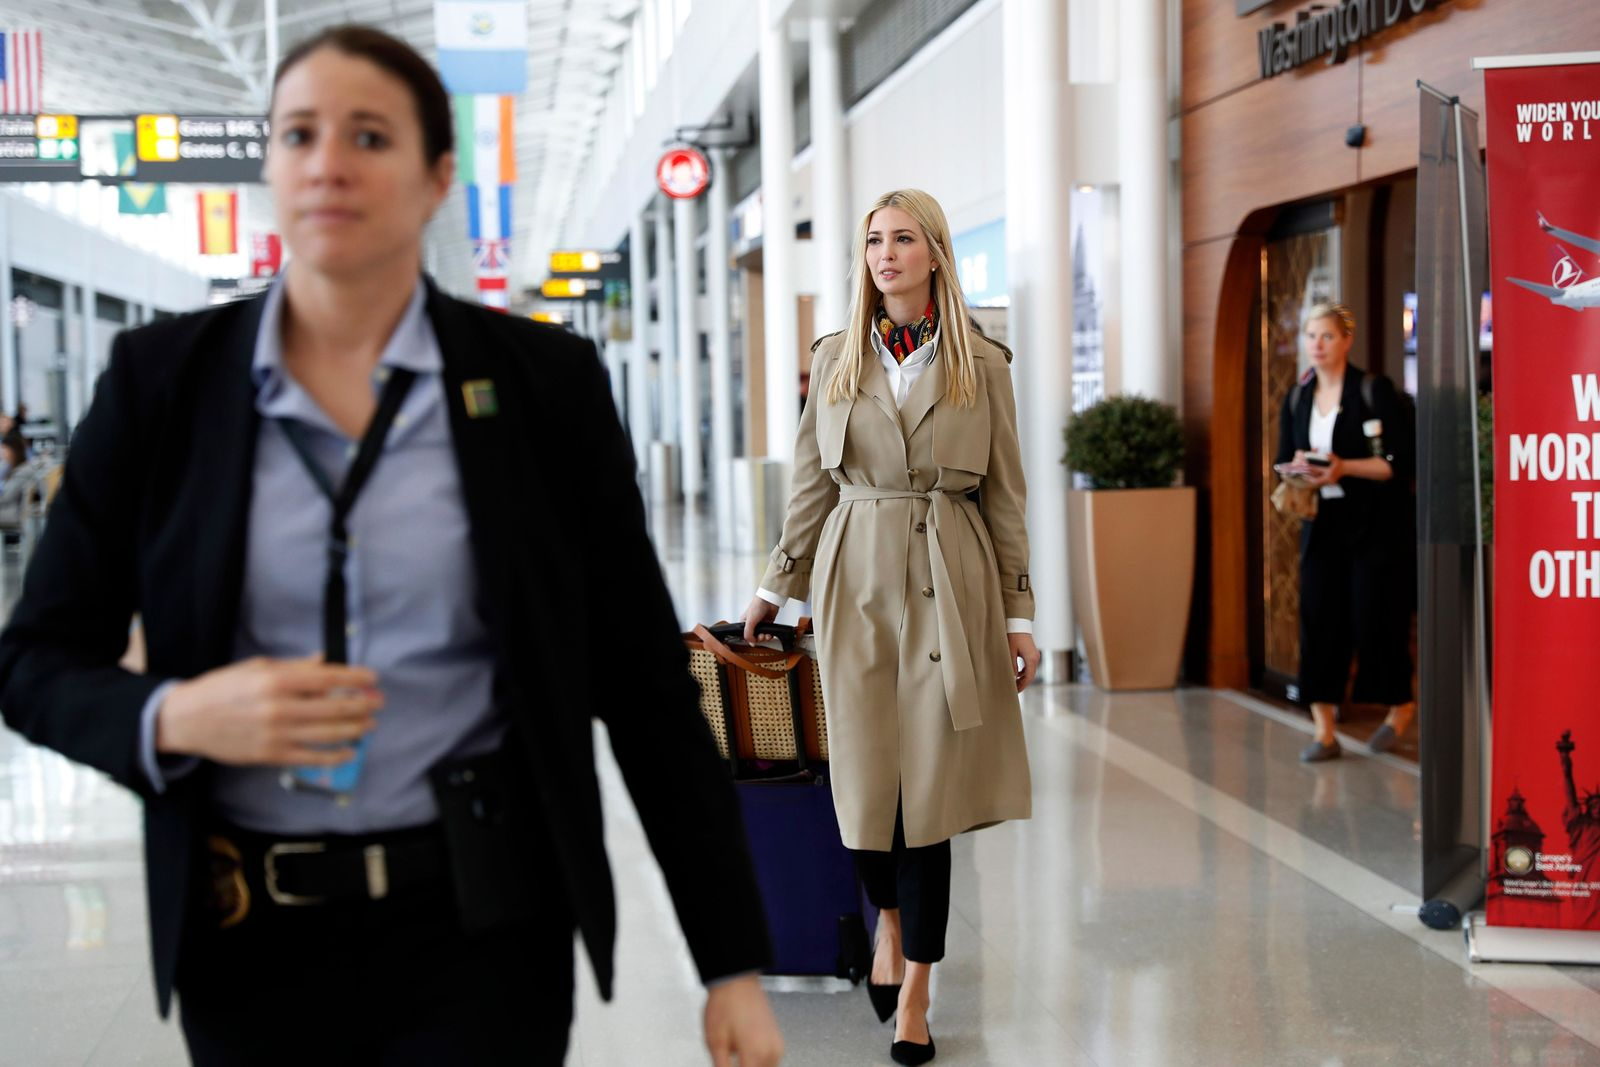 ADDS MORE INFORMATION ON TRIP - White House senior adviser Ivanka Trump walks through a terminal before boarding a commercial flight from Dulles International Airport, in Sterling, Va., Saturday April 13, 2019, en route to Ethiopia. Trump will travel to Ethiopia and Ivory Coast to promote a global economical program for women. (AP Photo/Jacquelyn Martin)